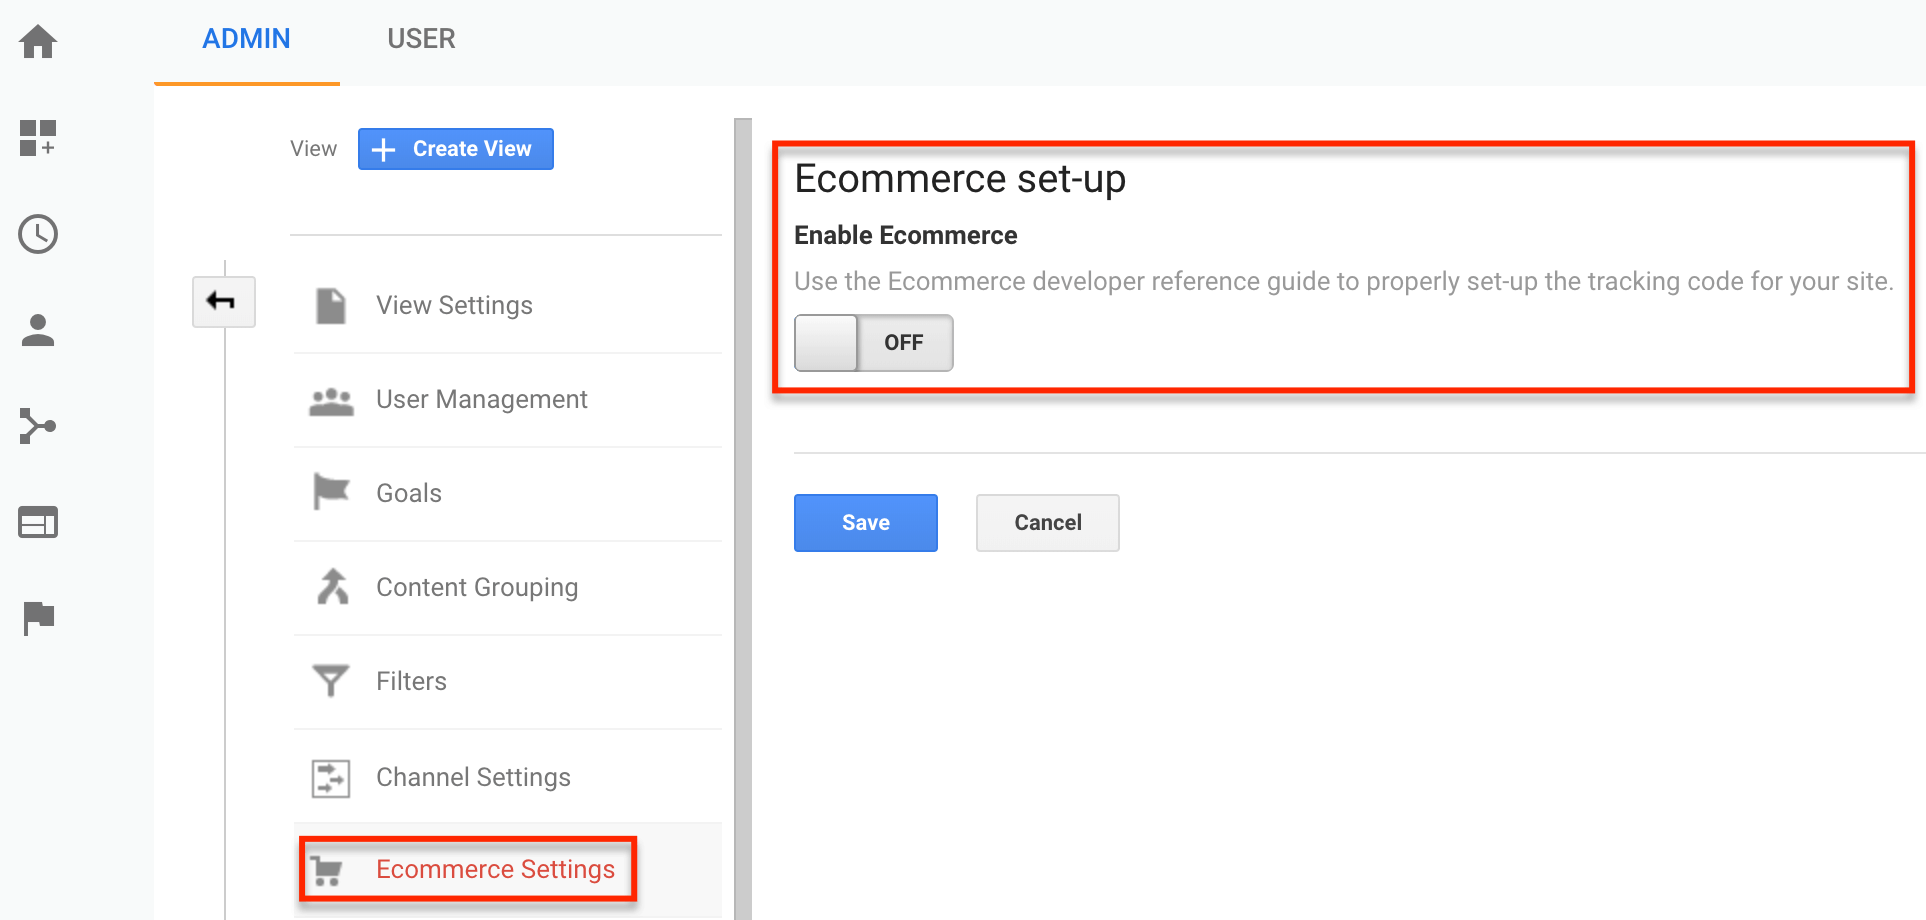 The Ultimate Beginner's Guide to Google Analytics-image13